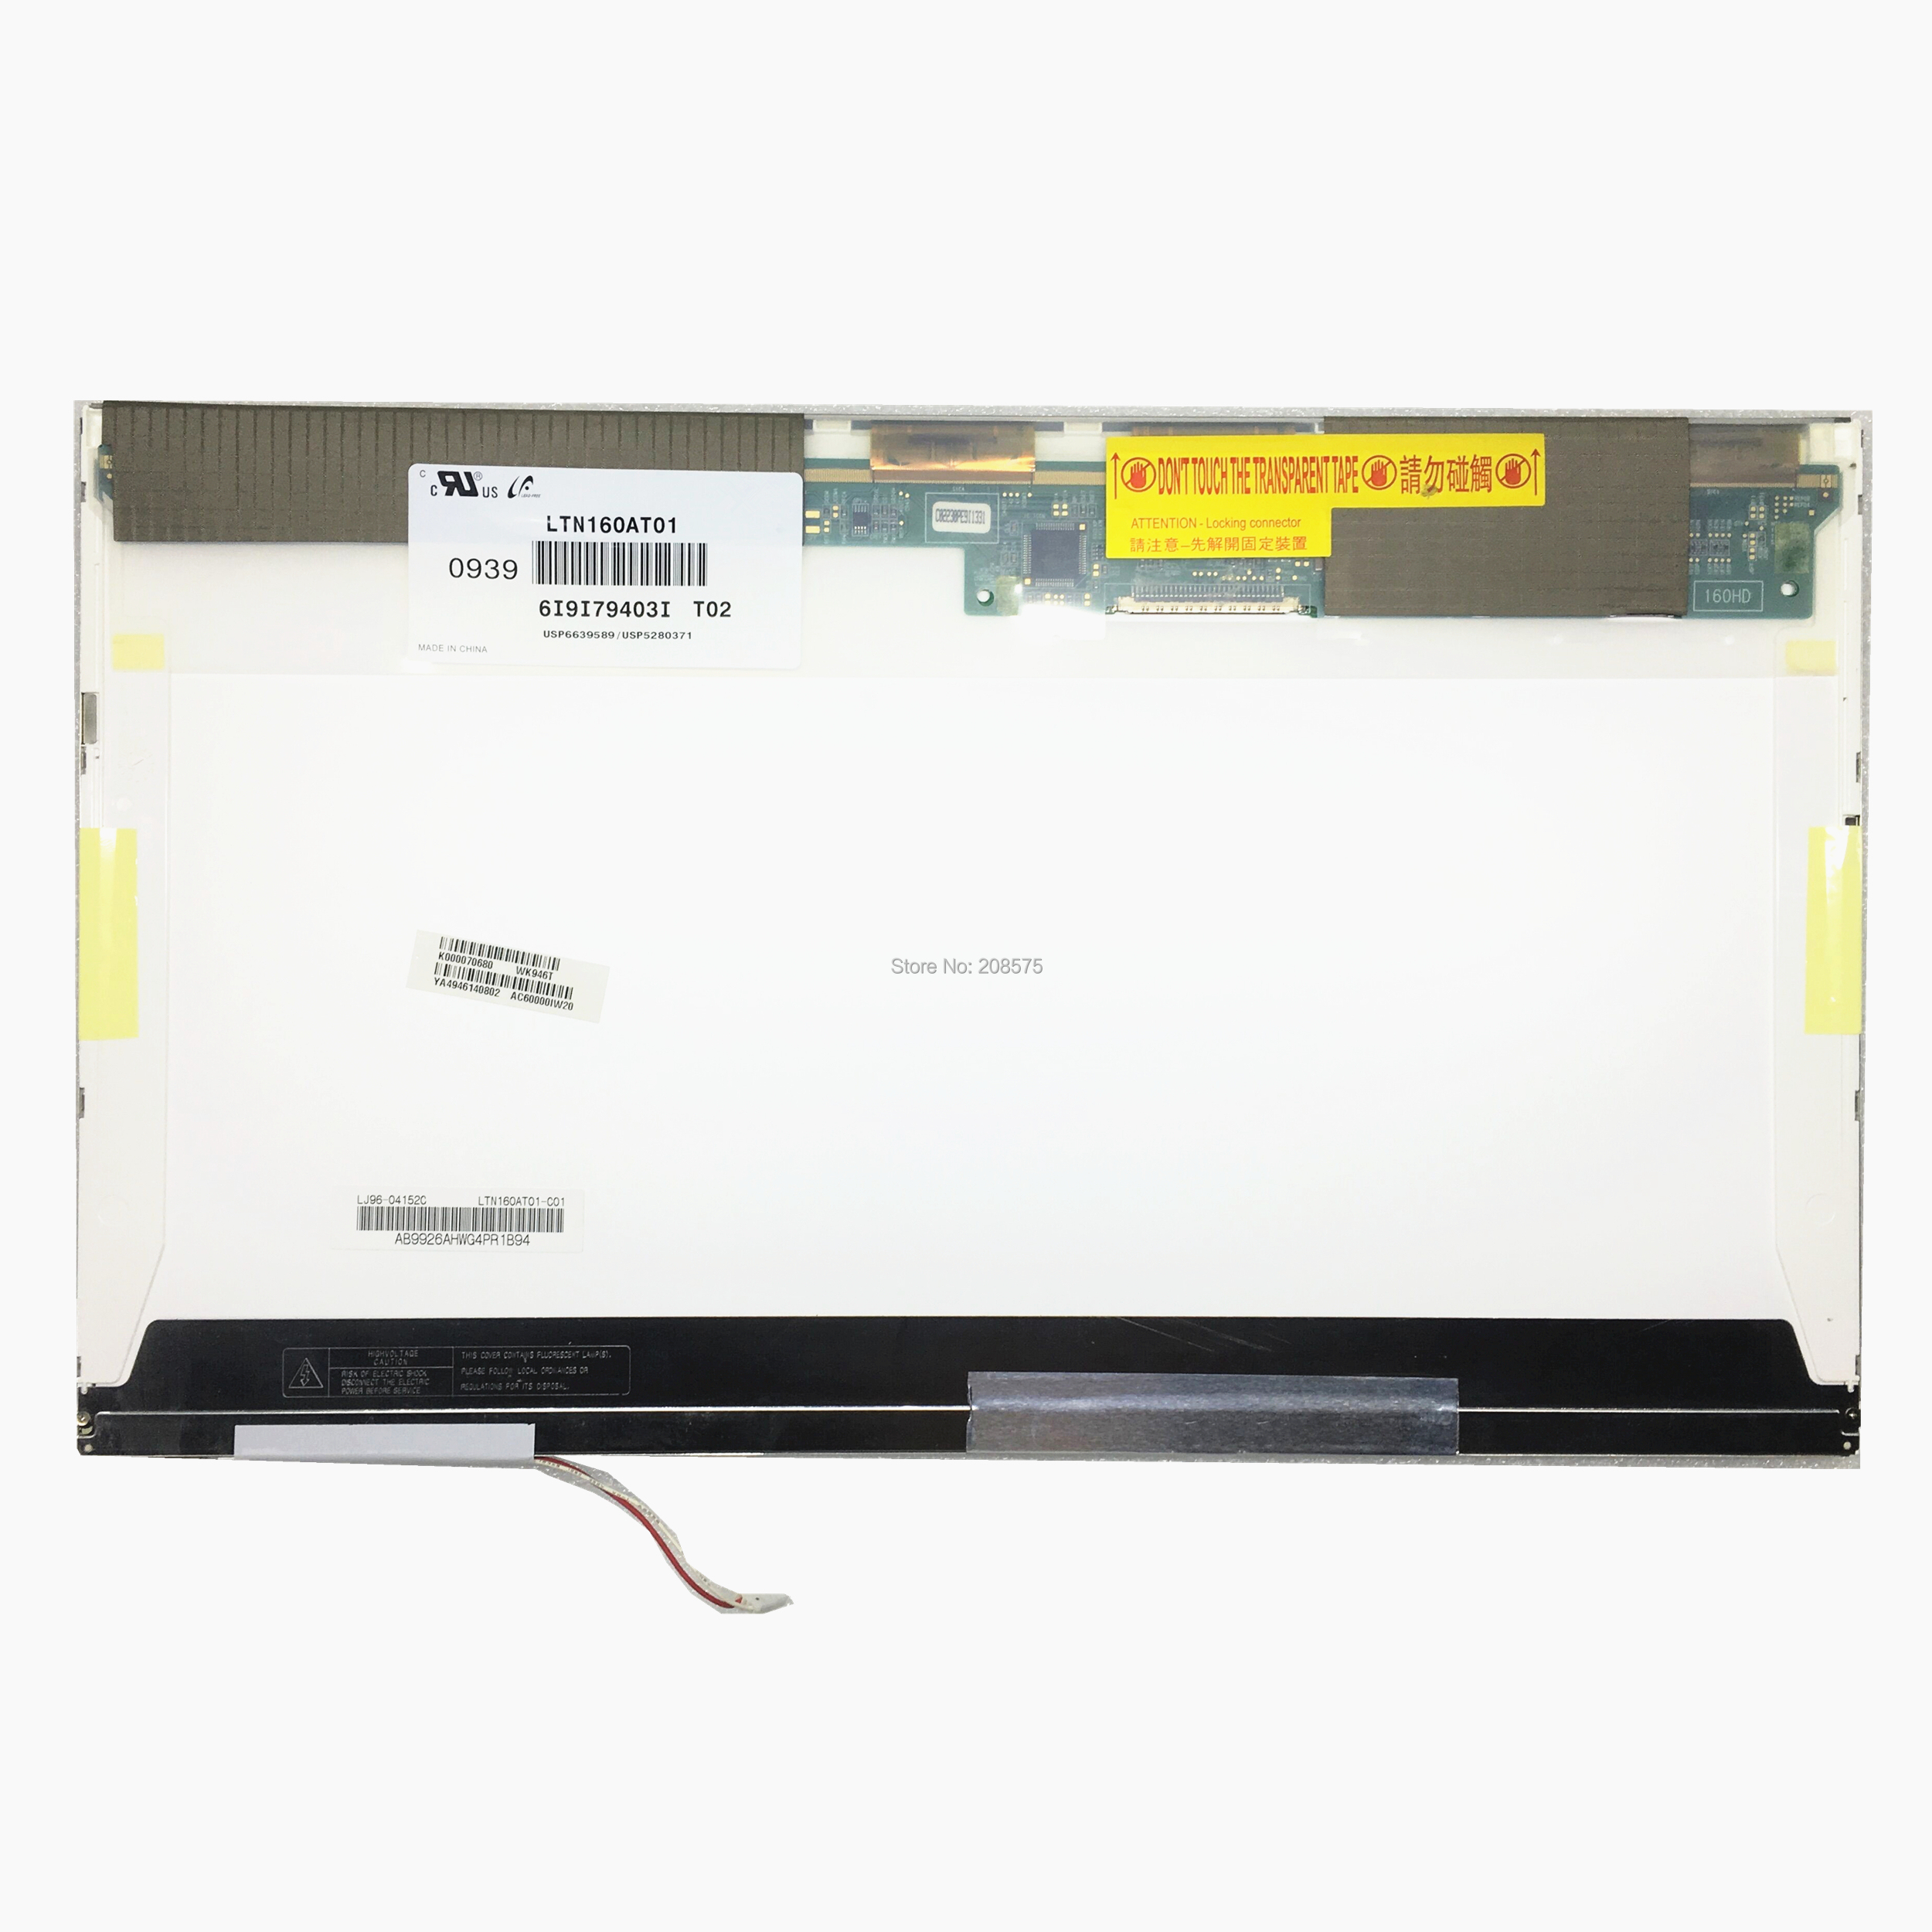 Free Shipping LTN160AT01 LTN160AT02 For Asus X61S Acer 6920 6930G 6935 6935G Toshiba AX 53HPK HP